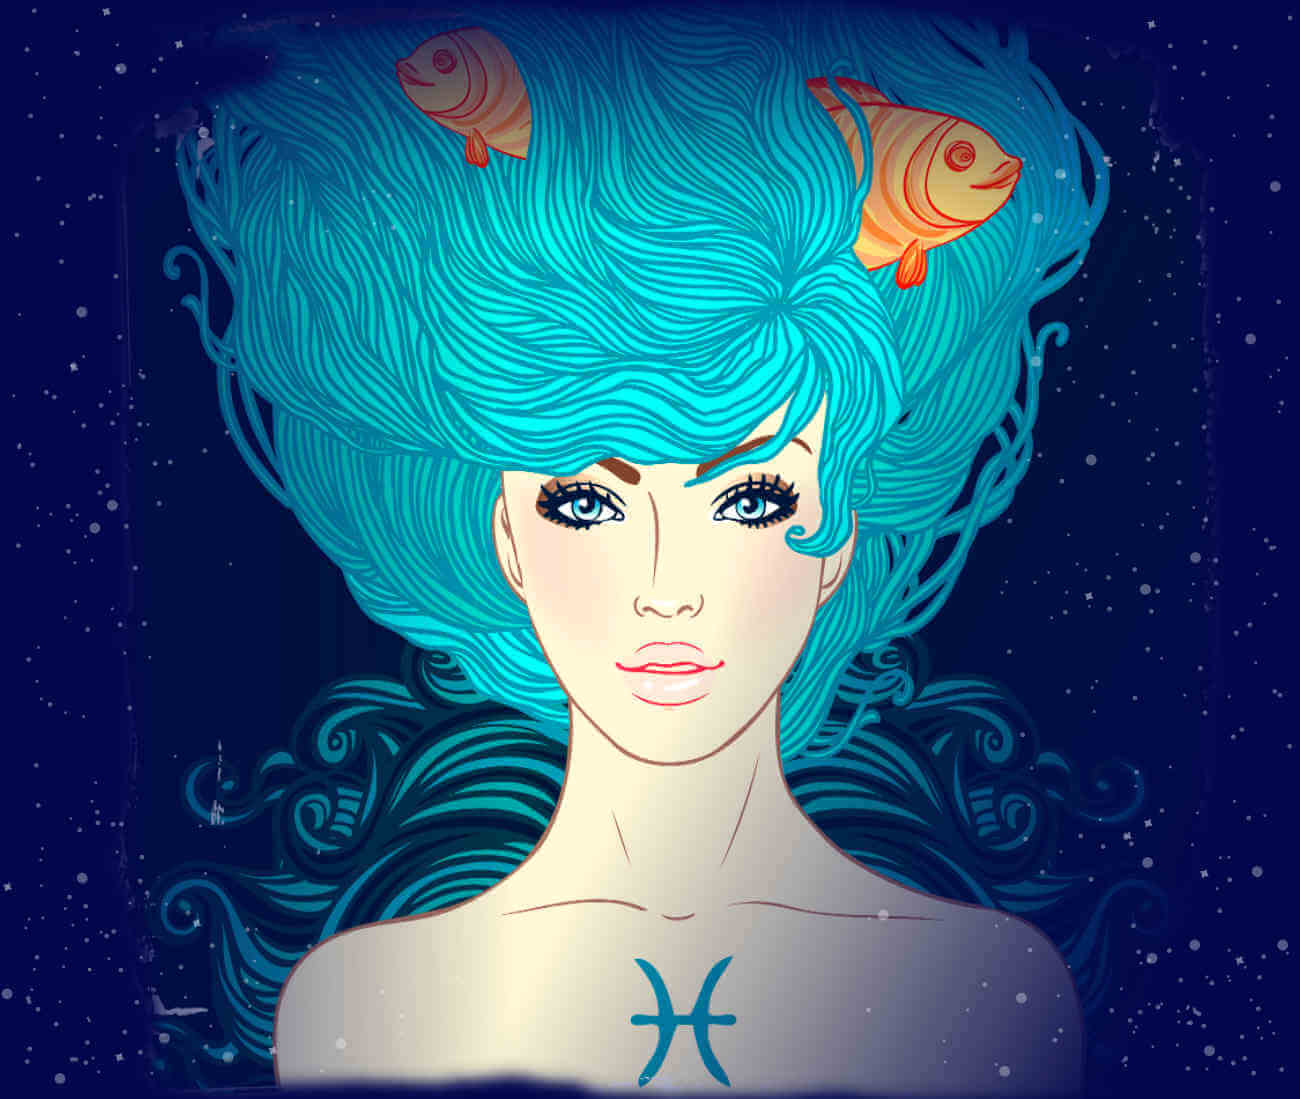 current astrology horoscopes Tuesday, Pisces tommorow's horoscope